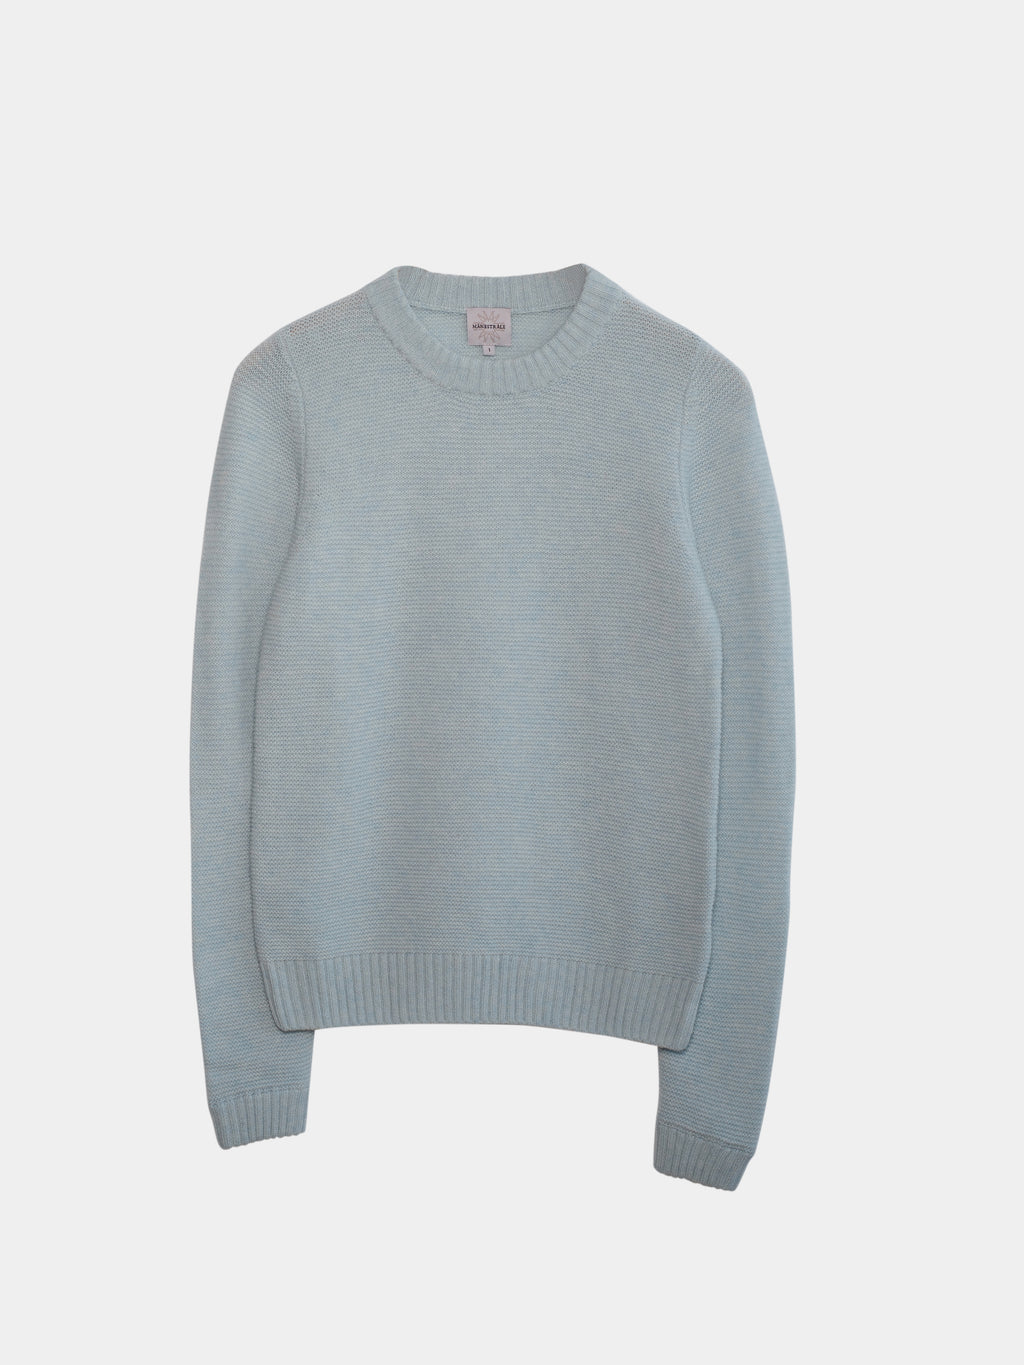 Liva Cashmere Sweater